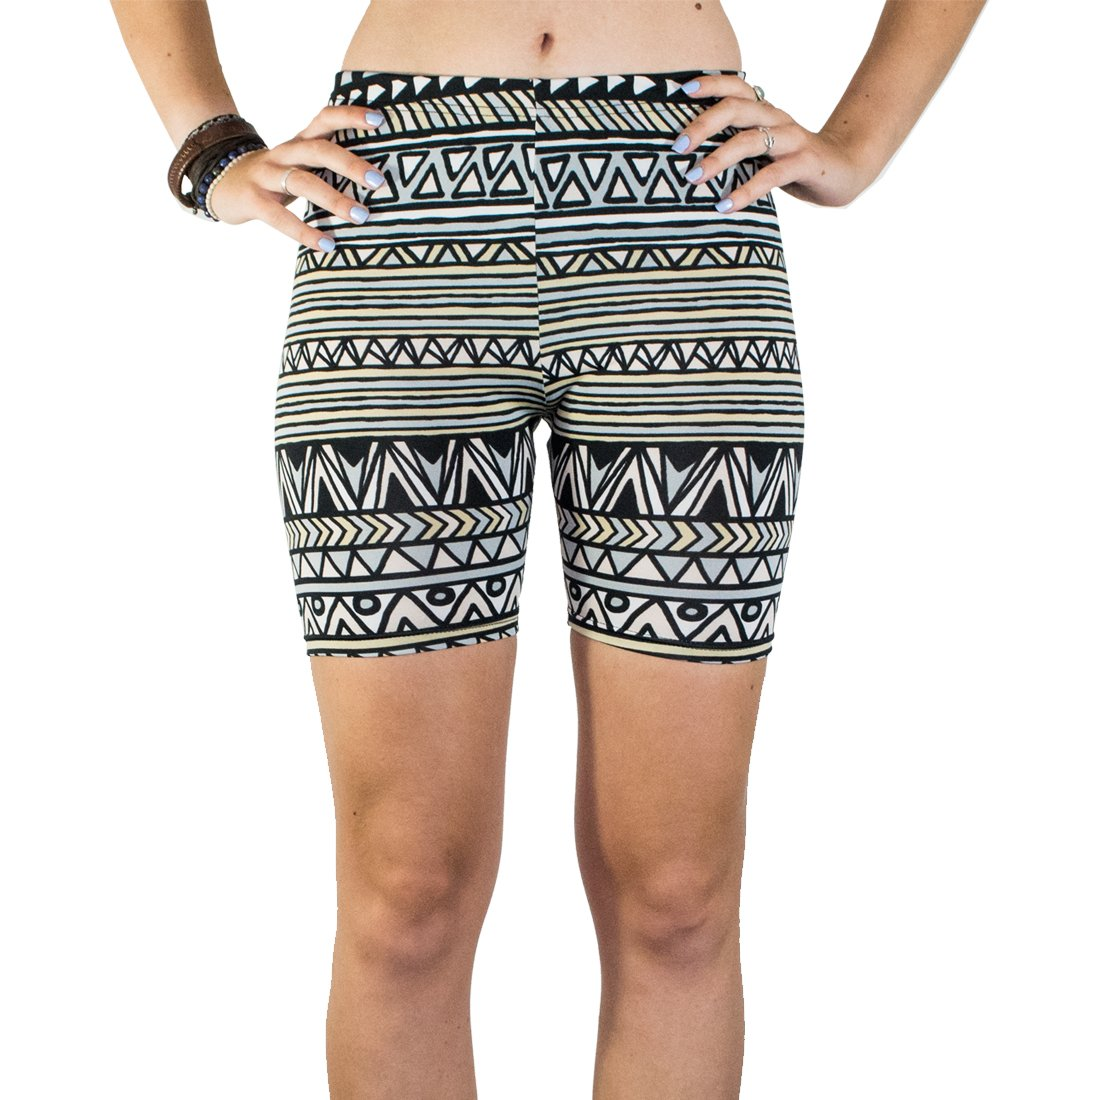 Booties, Women's Breathable Yoga Exercise Swim Party Shorts :: Mayan Ascent